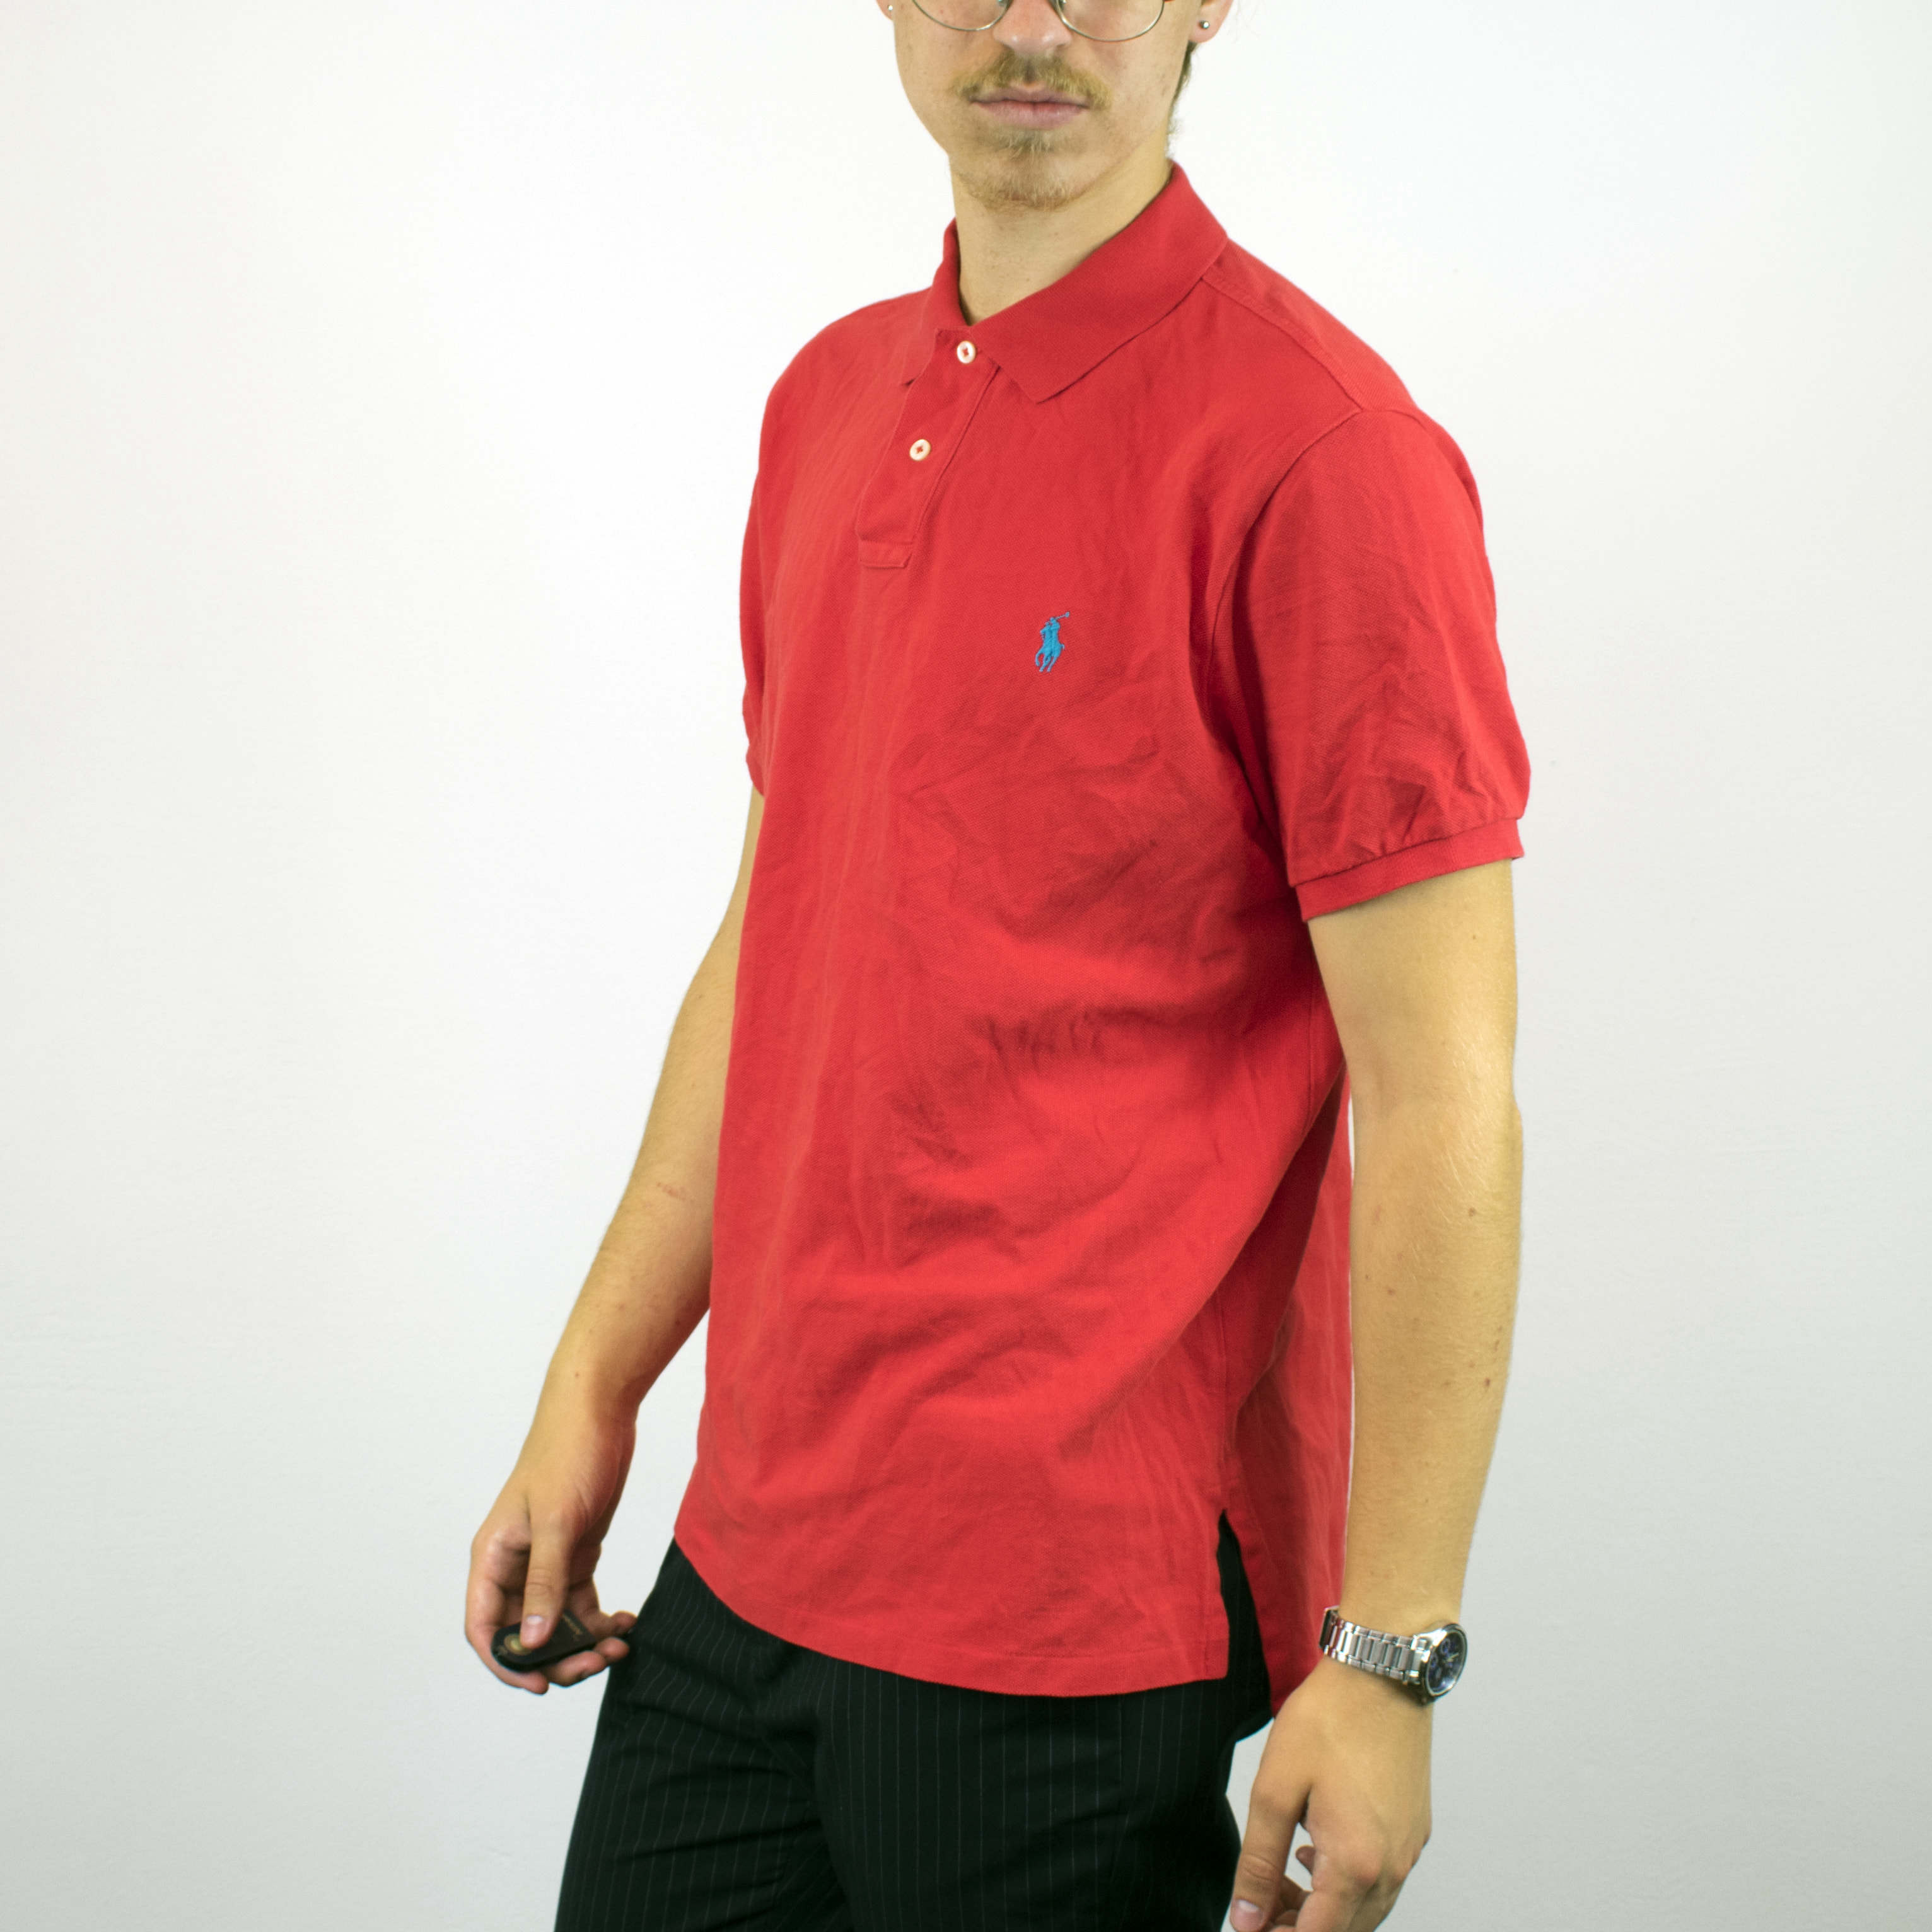 Vintage Ralph Lauren polo shirt t-shirt pullover in red